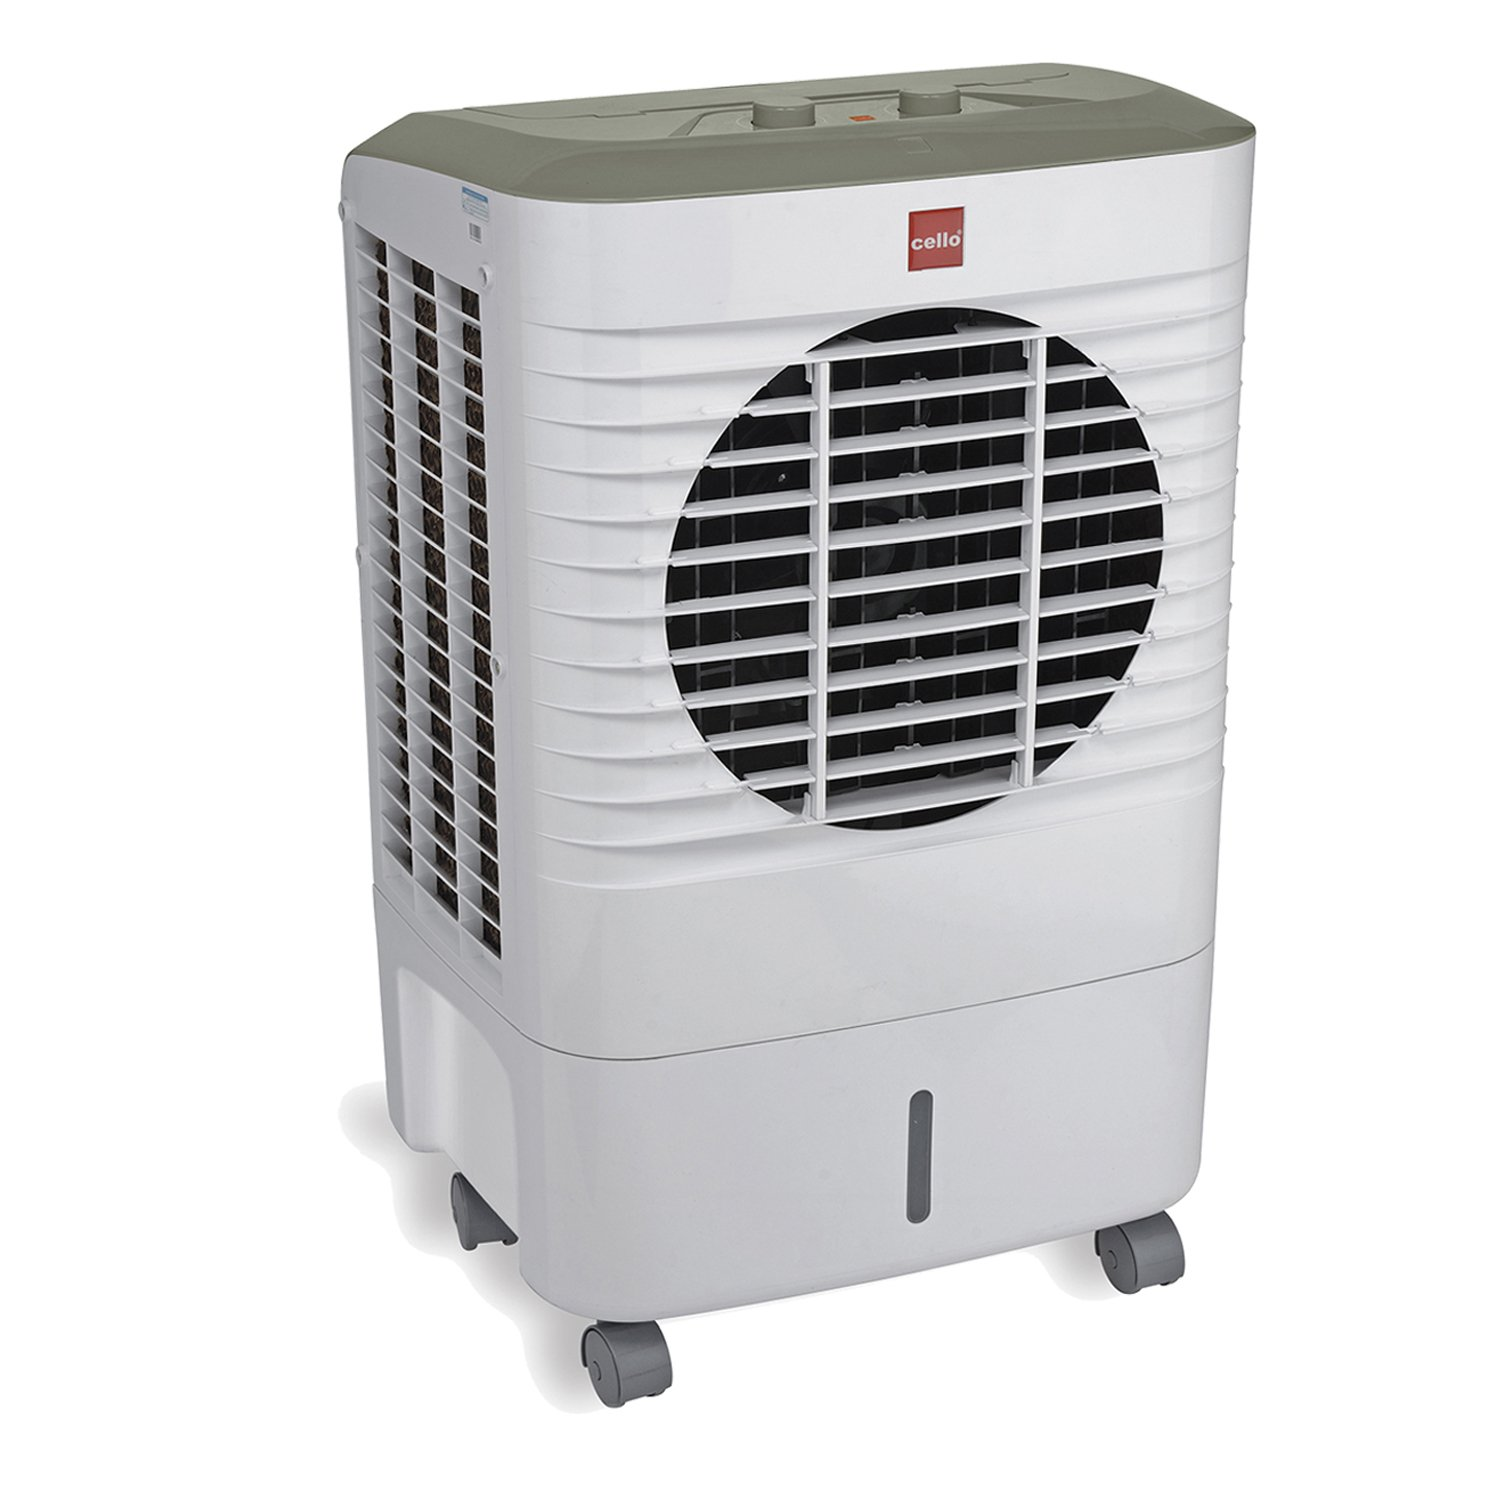 Cello Smart Plus 22 Room Air Cooler 30 LitresPrice in ...